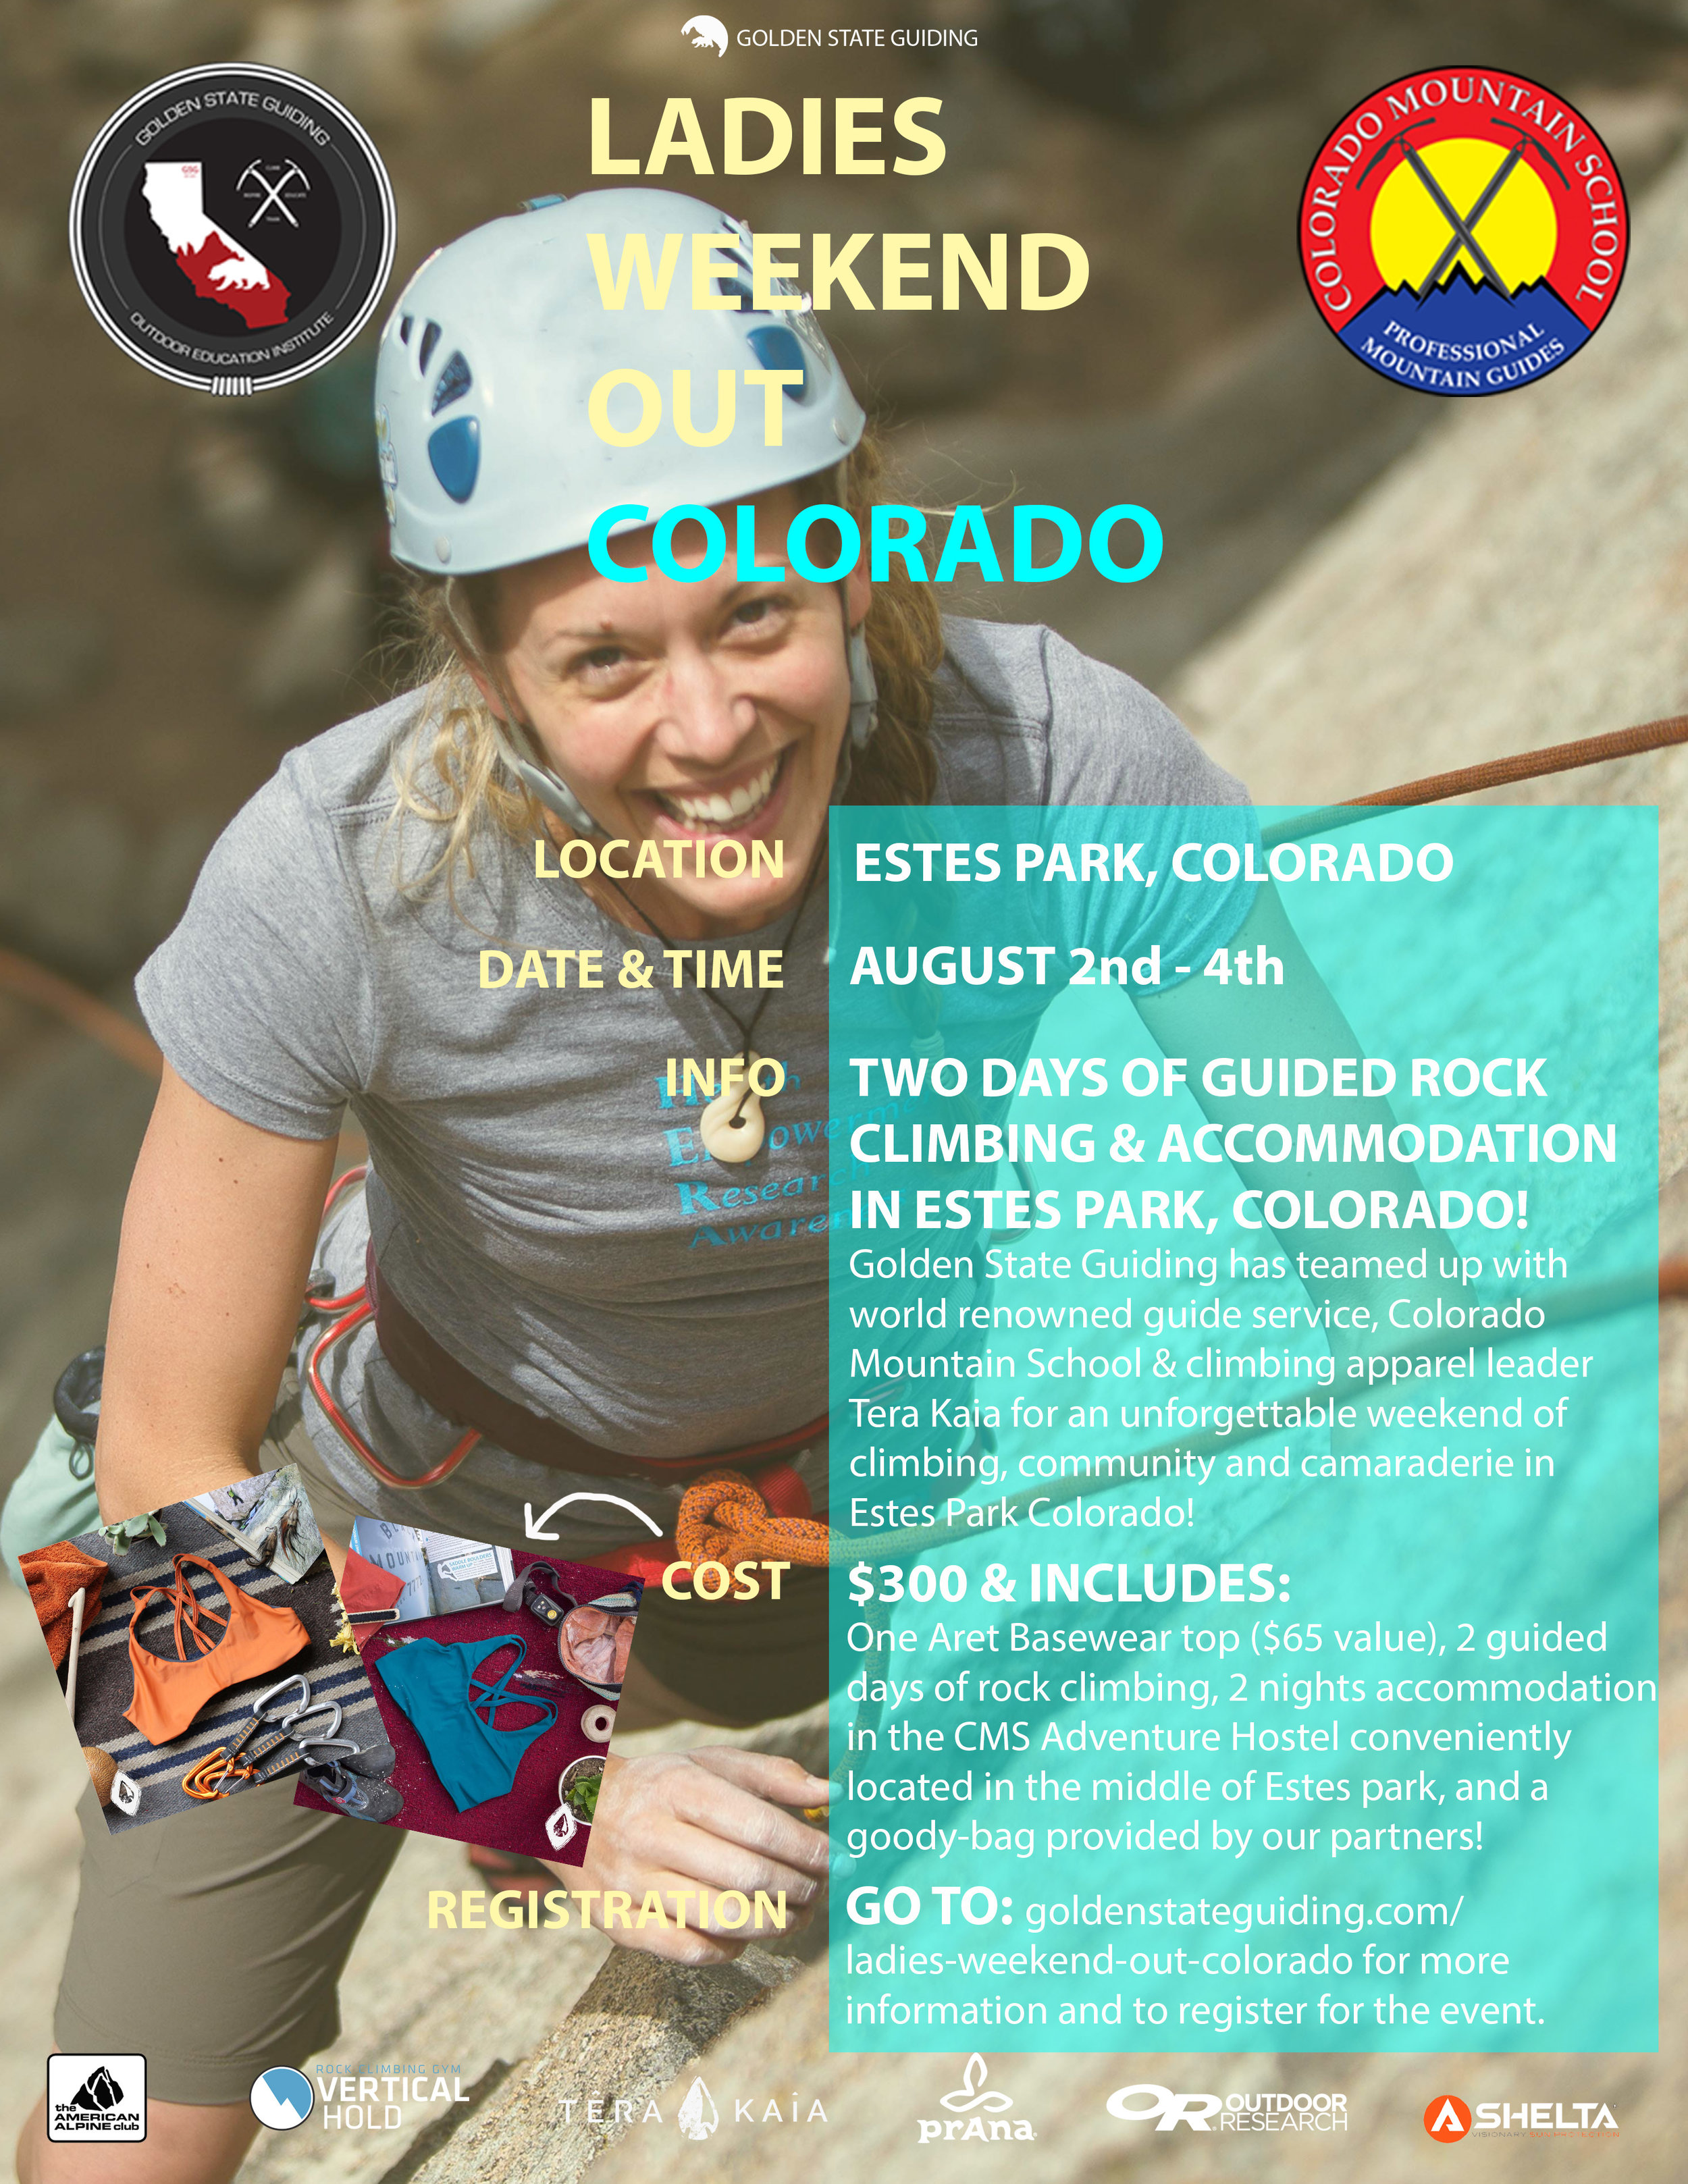 Ladies Weekend Out Colorado Estes Park Rock Climbing